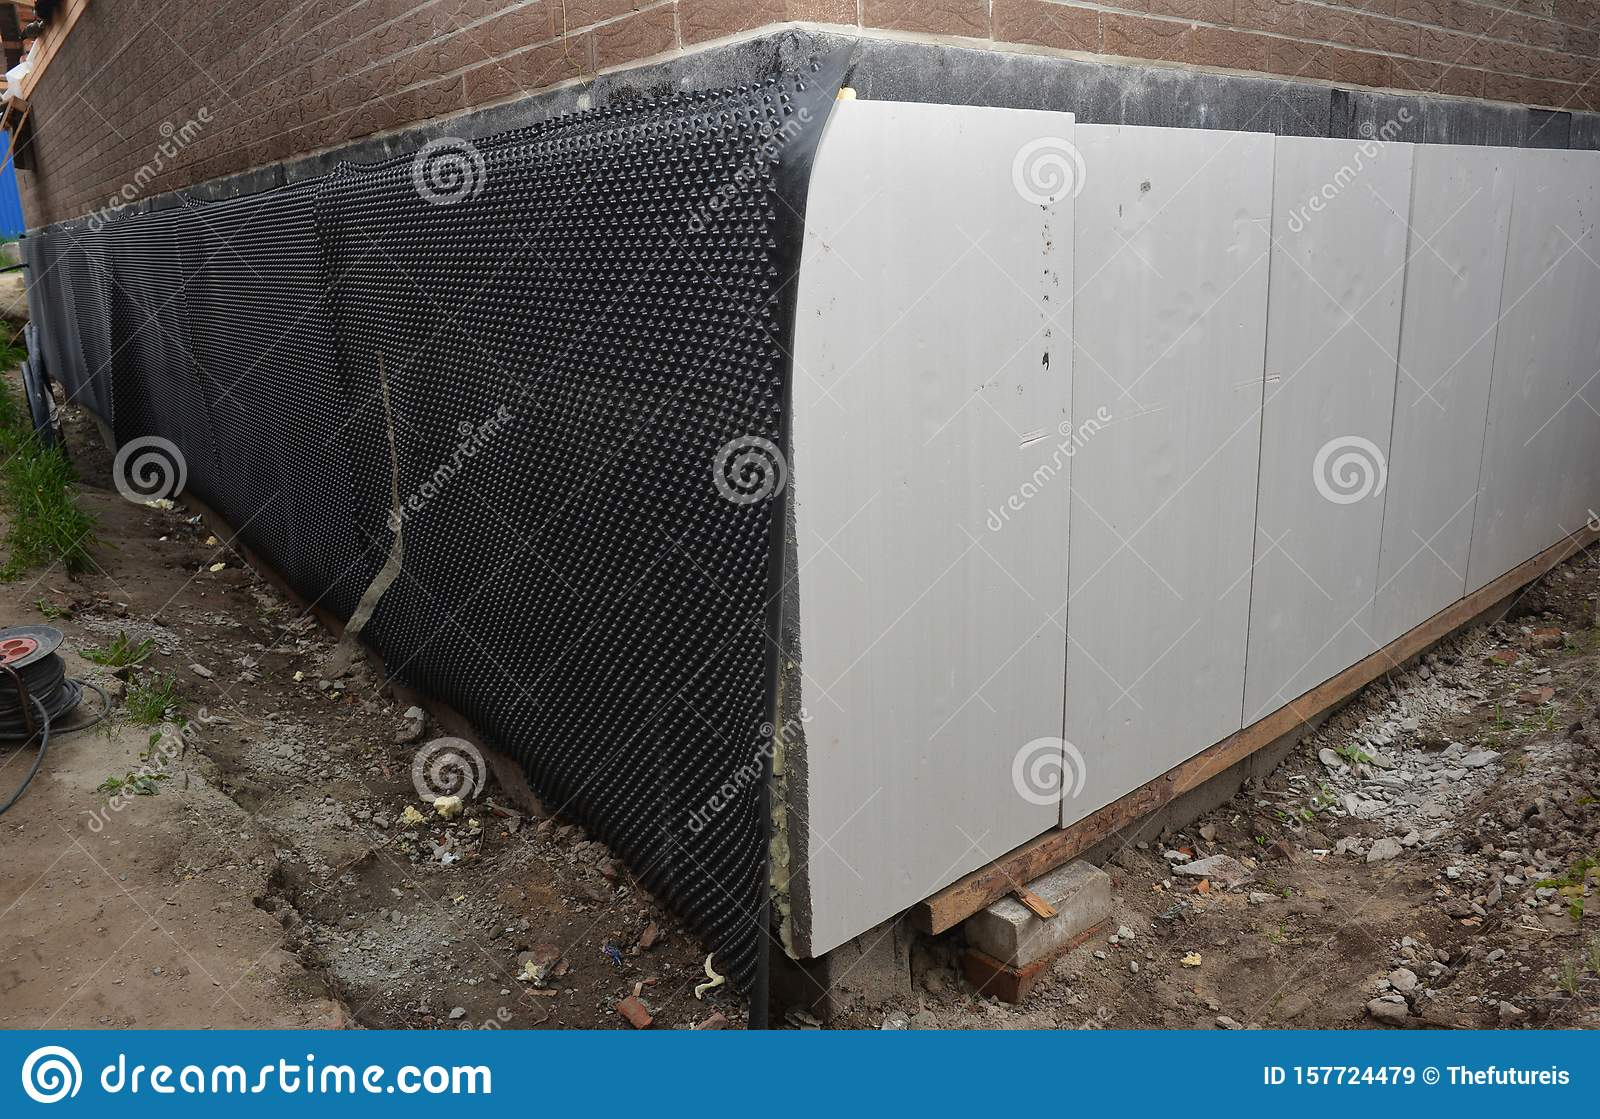 Foundation Foam Insulation Boards With Waterproofing Damp Proofing Passive House Foundation Insulation And Waterproofing For Stock Image Image Of Repair Foam 157724479